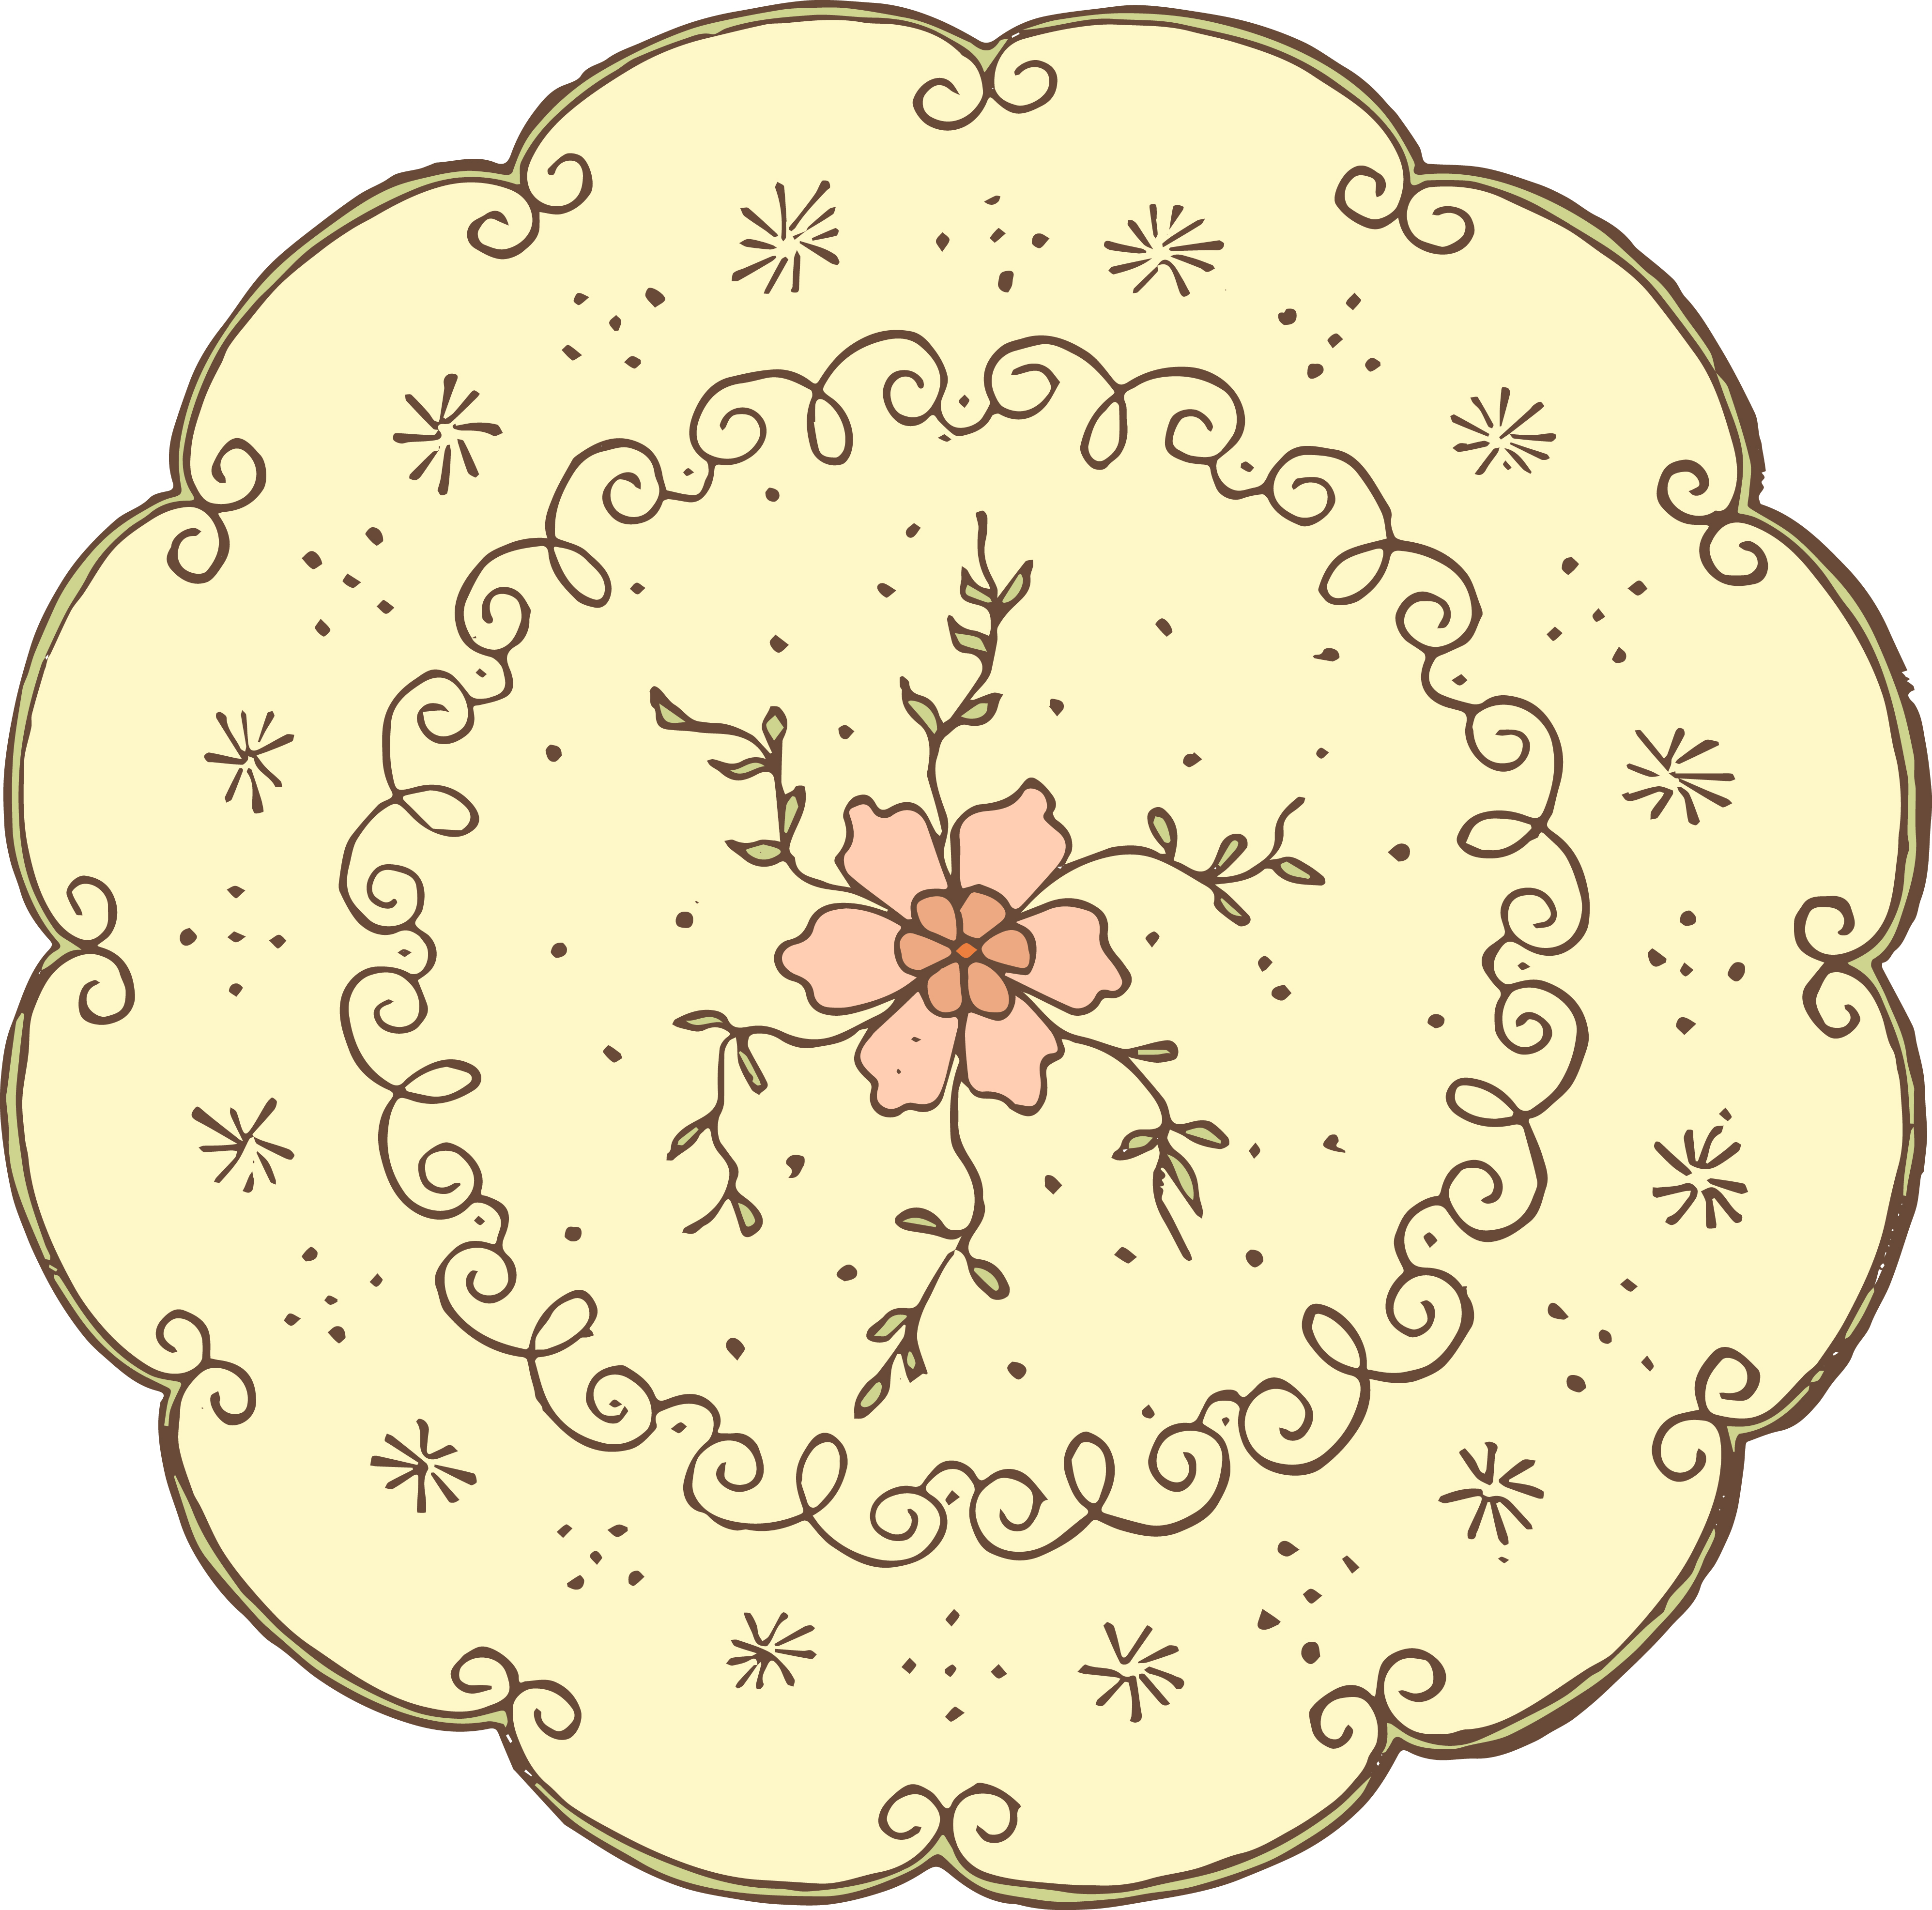 Free doily clipart jpg free download Free Doily Cliparts, Download Free Clip Art, Free Clip Art on ... jpg free download